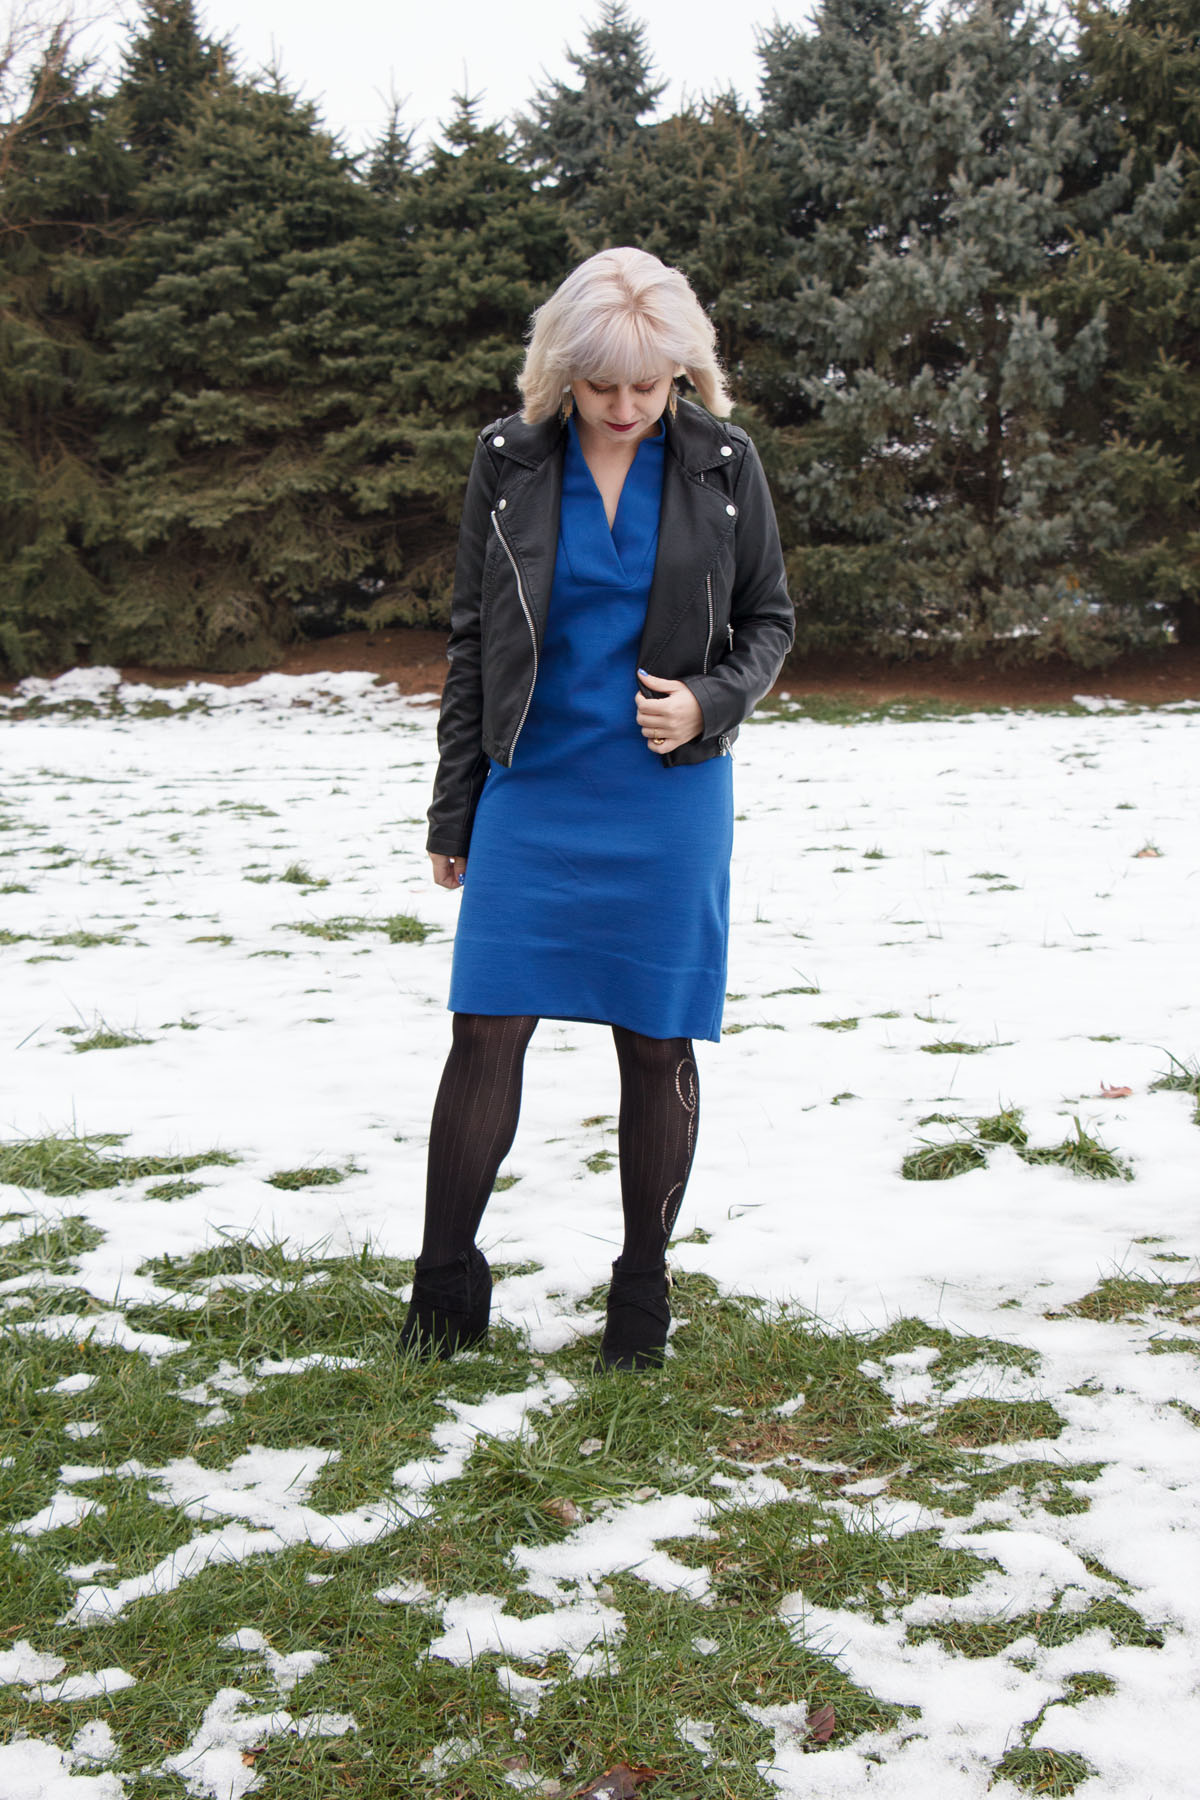 Ice Blonde Hair, Faux Leather Coat, Blue Shift Dress, and Wedge Boots